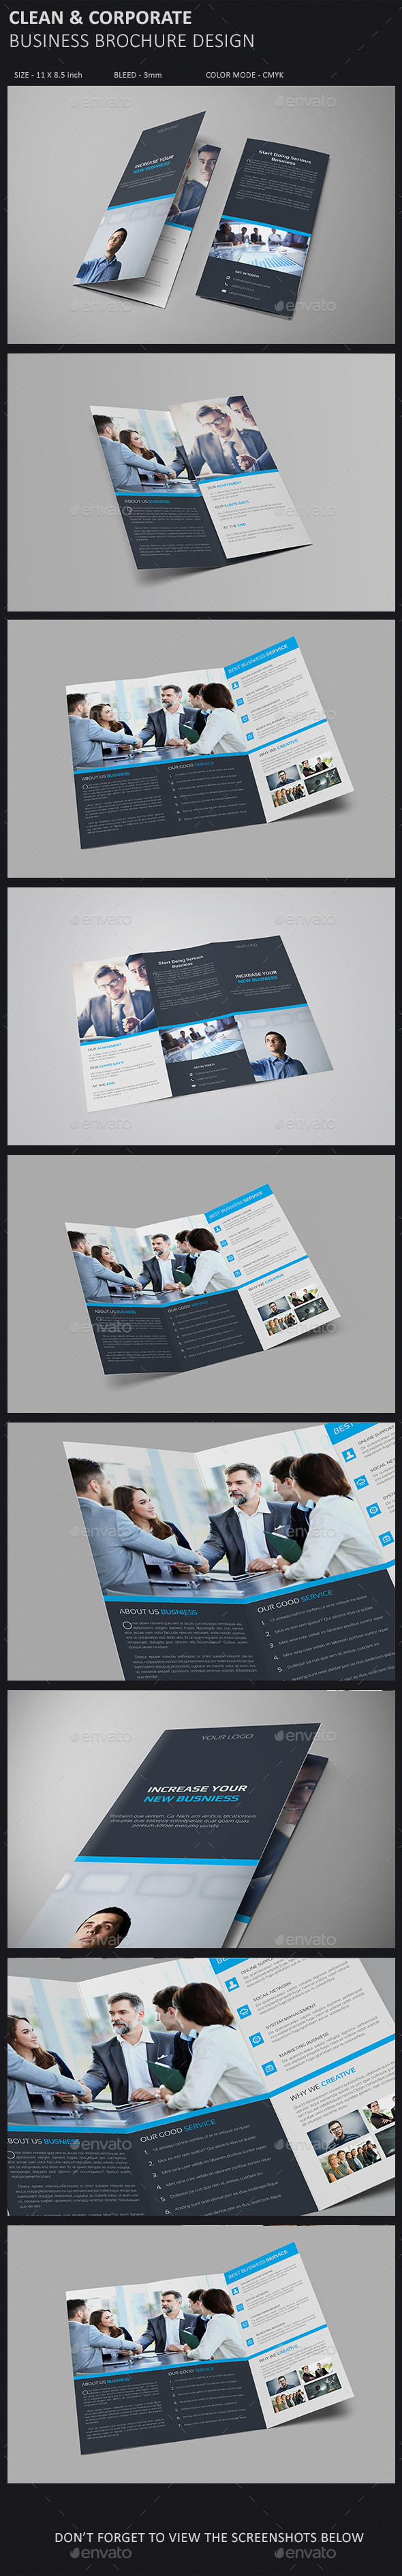 Clean & Corporate Tri-fold Brochure Template - Corporate Brochures